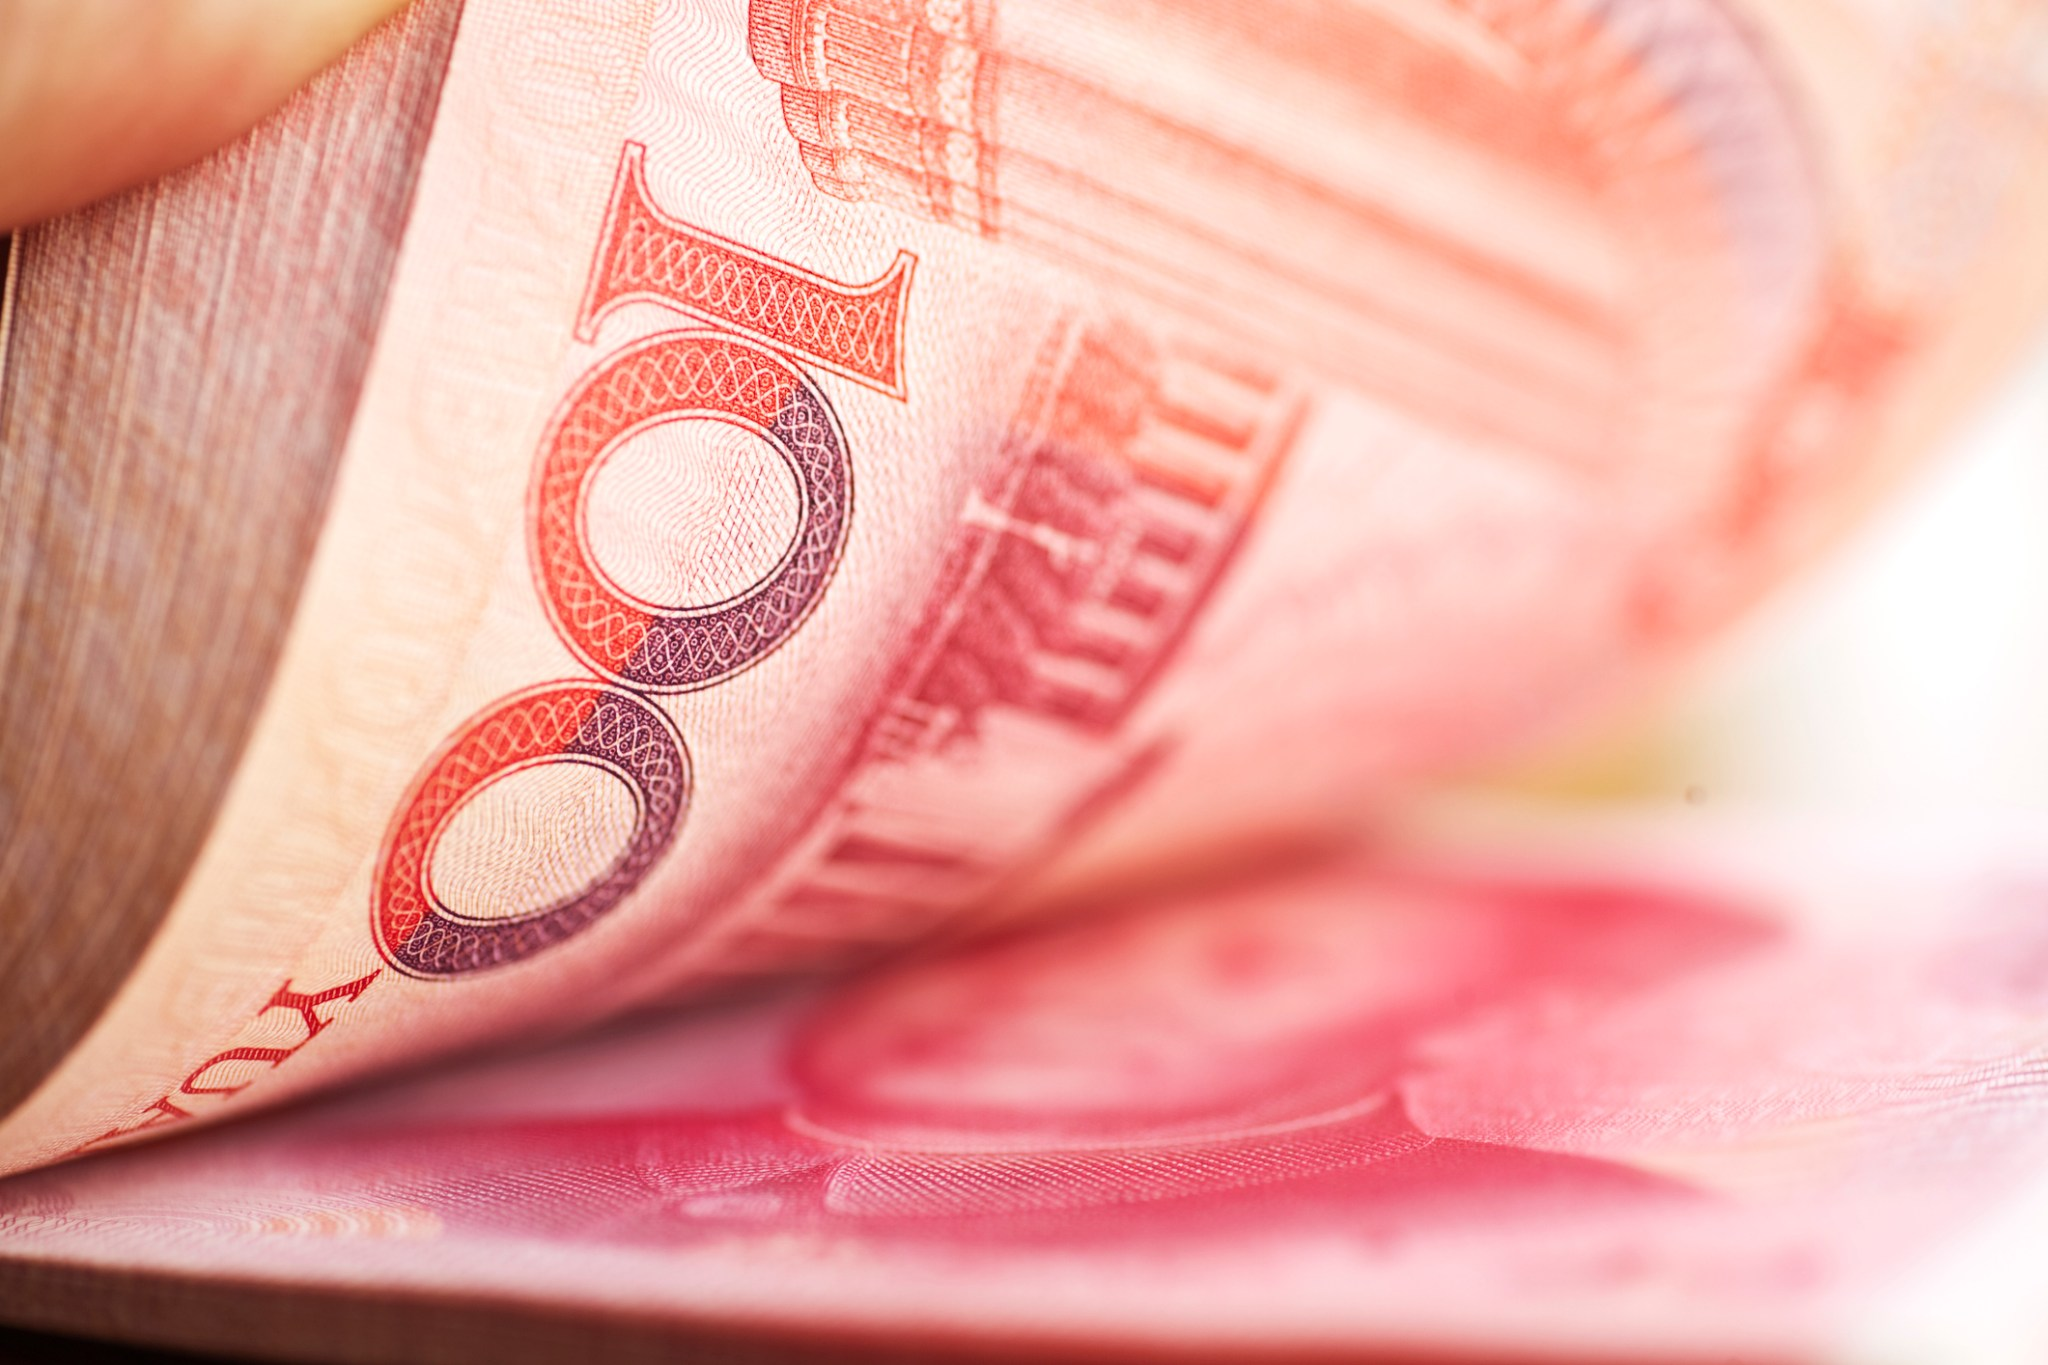 Yuan breaking through the 'red line'